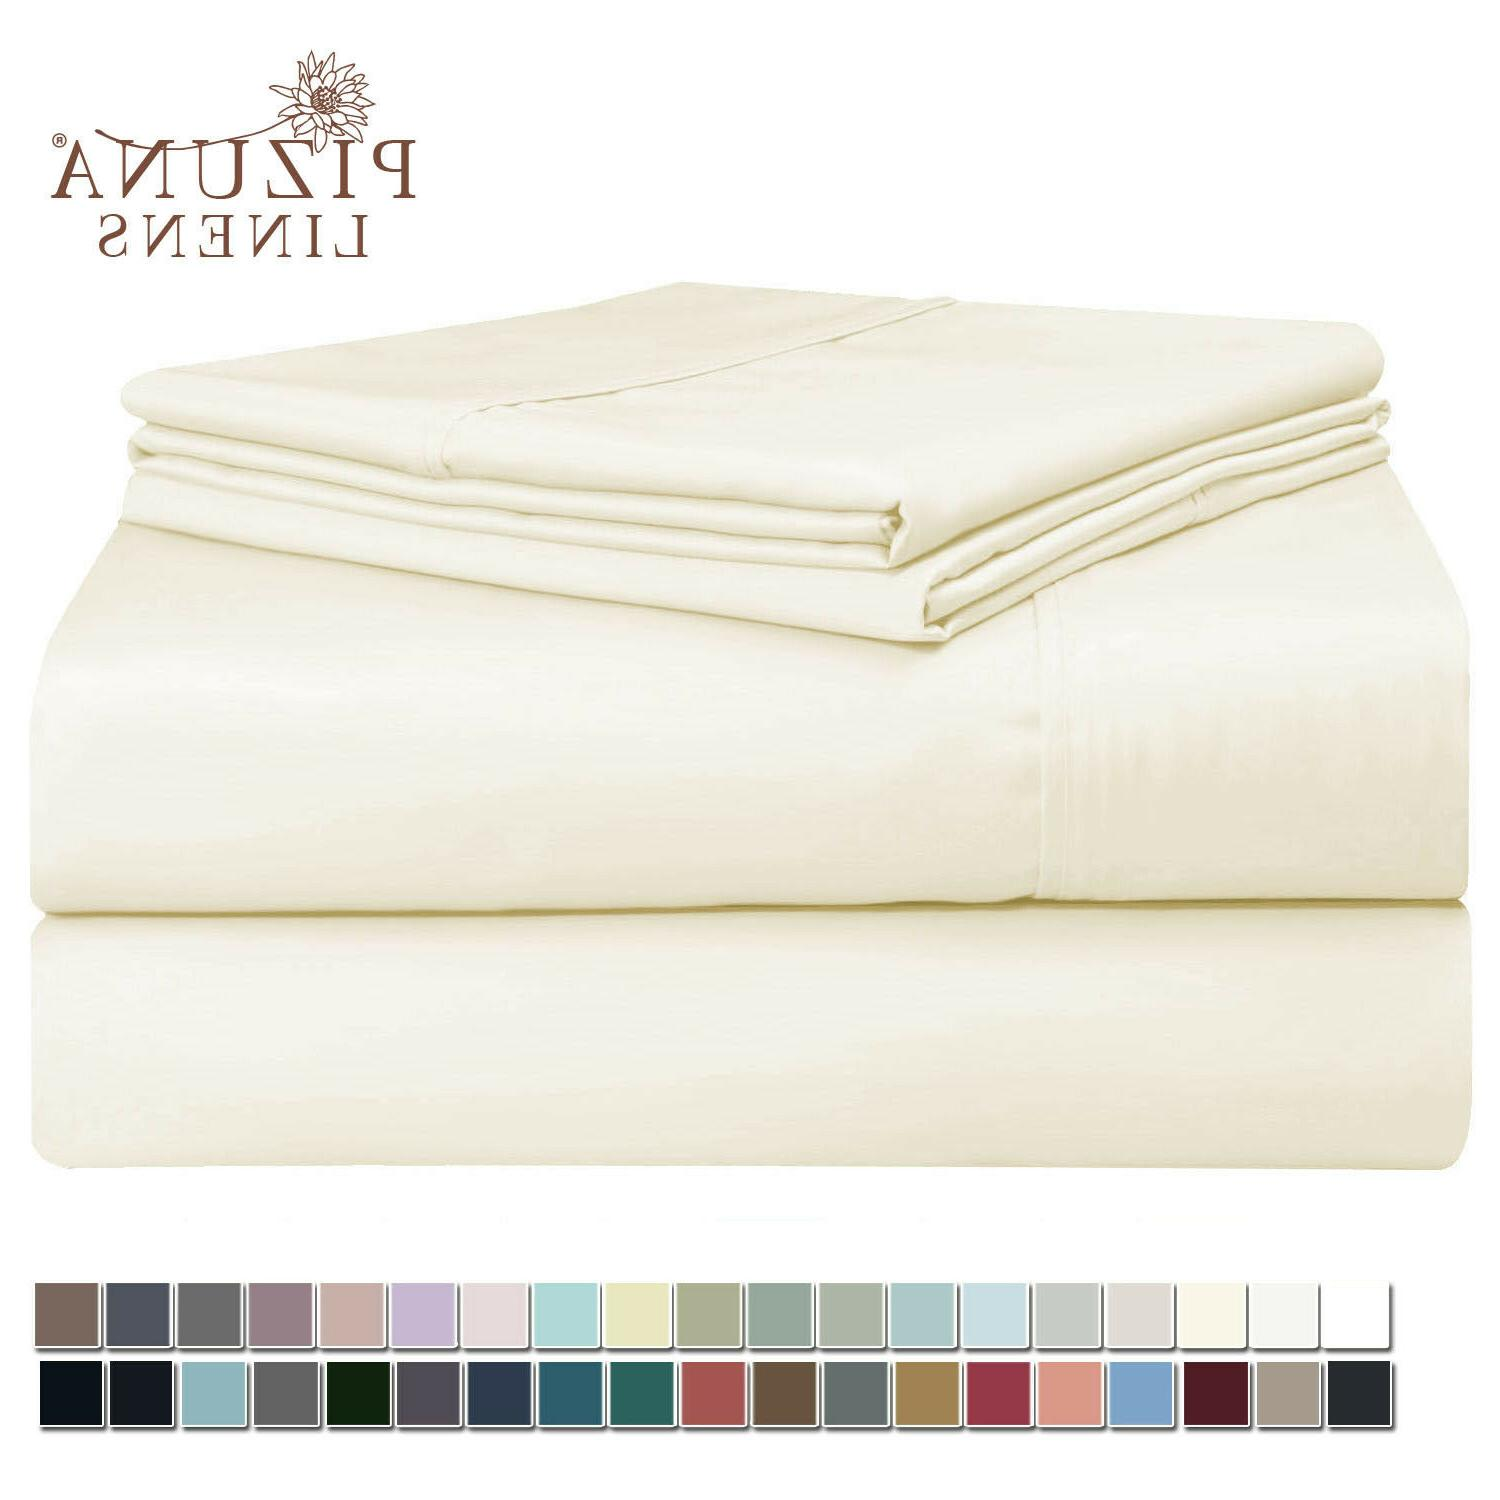 Ralph Lauren 4 Piece King Sheet Set 100% Cotton Dunham Satee